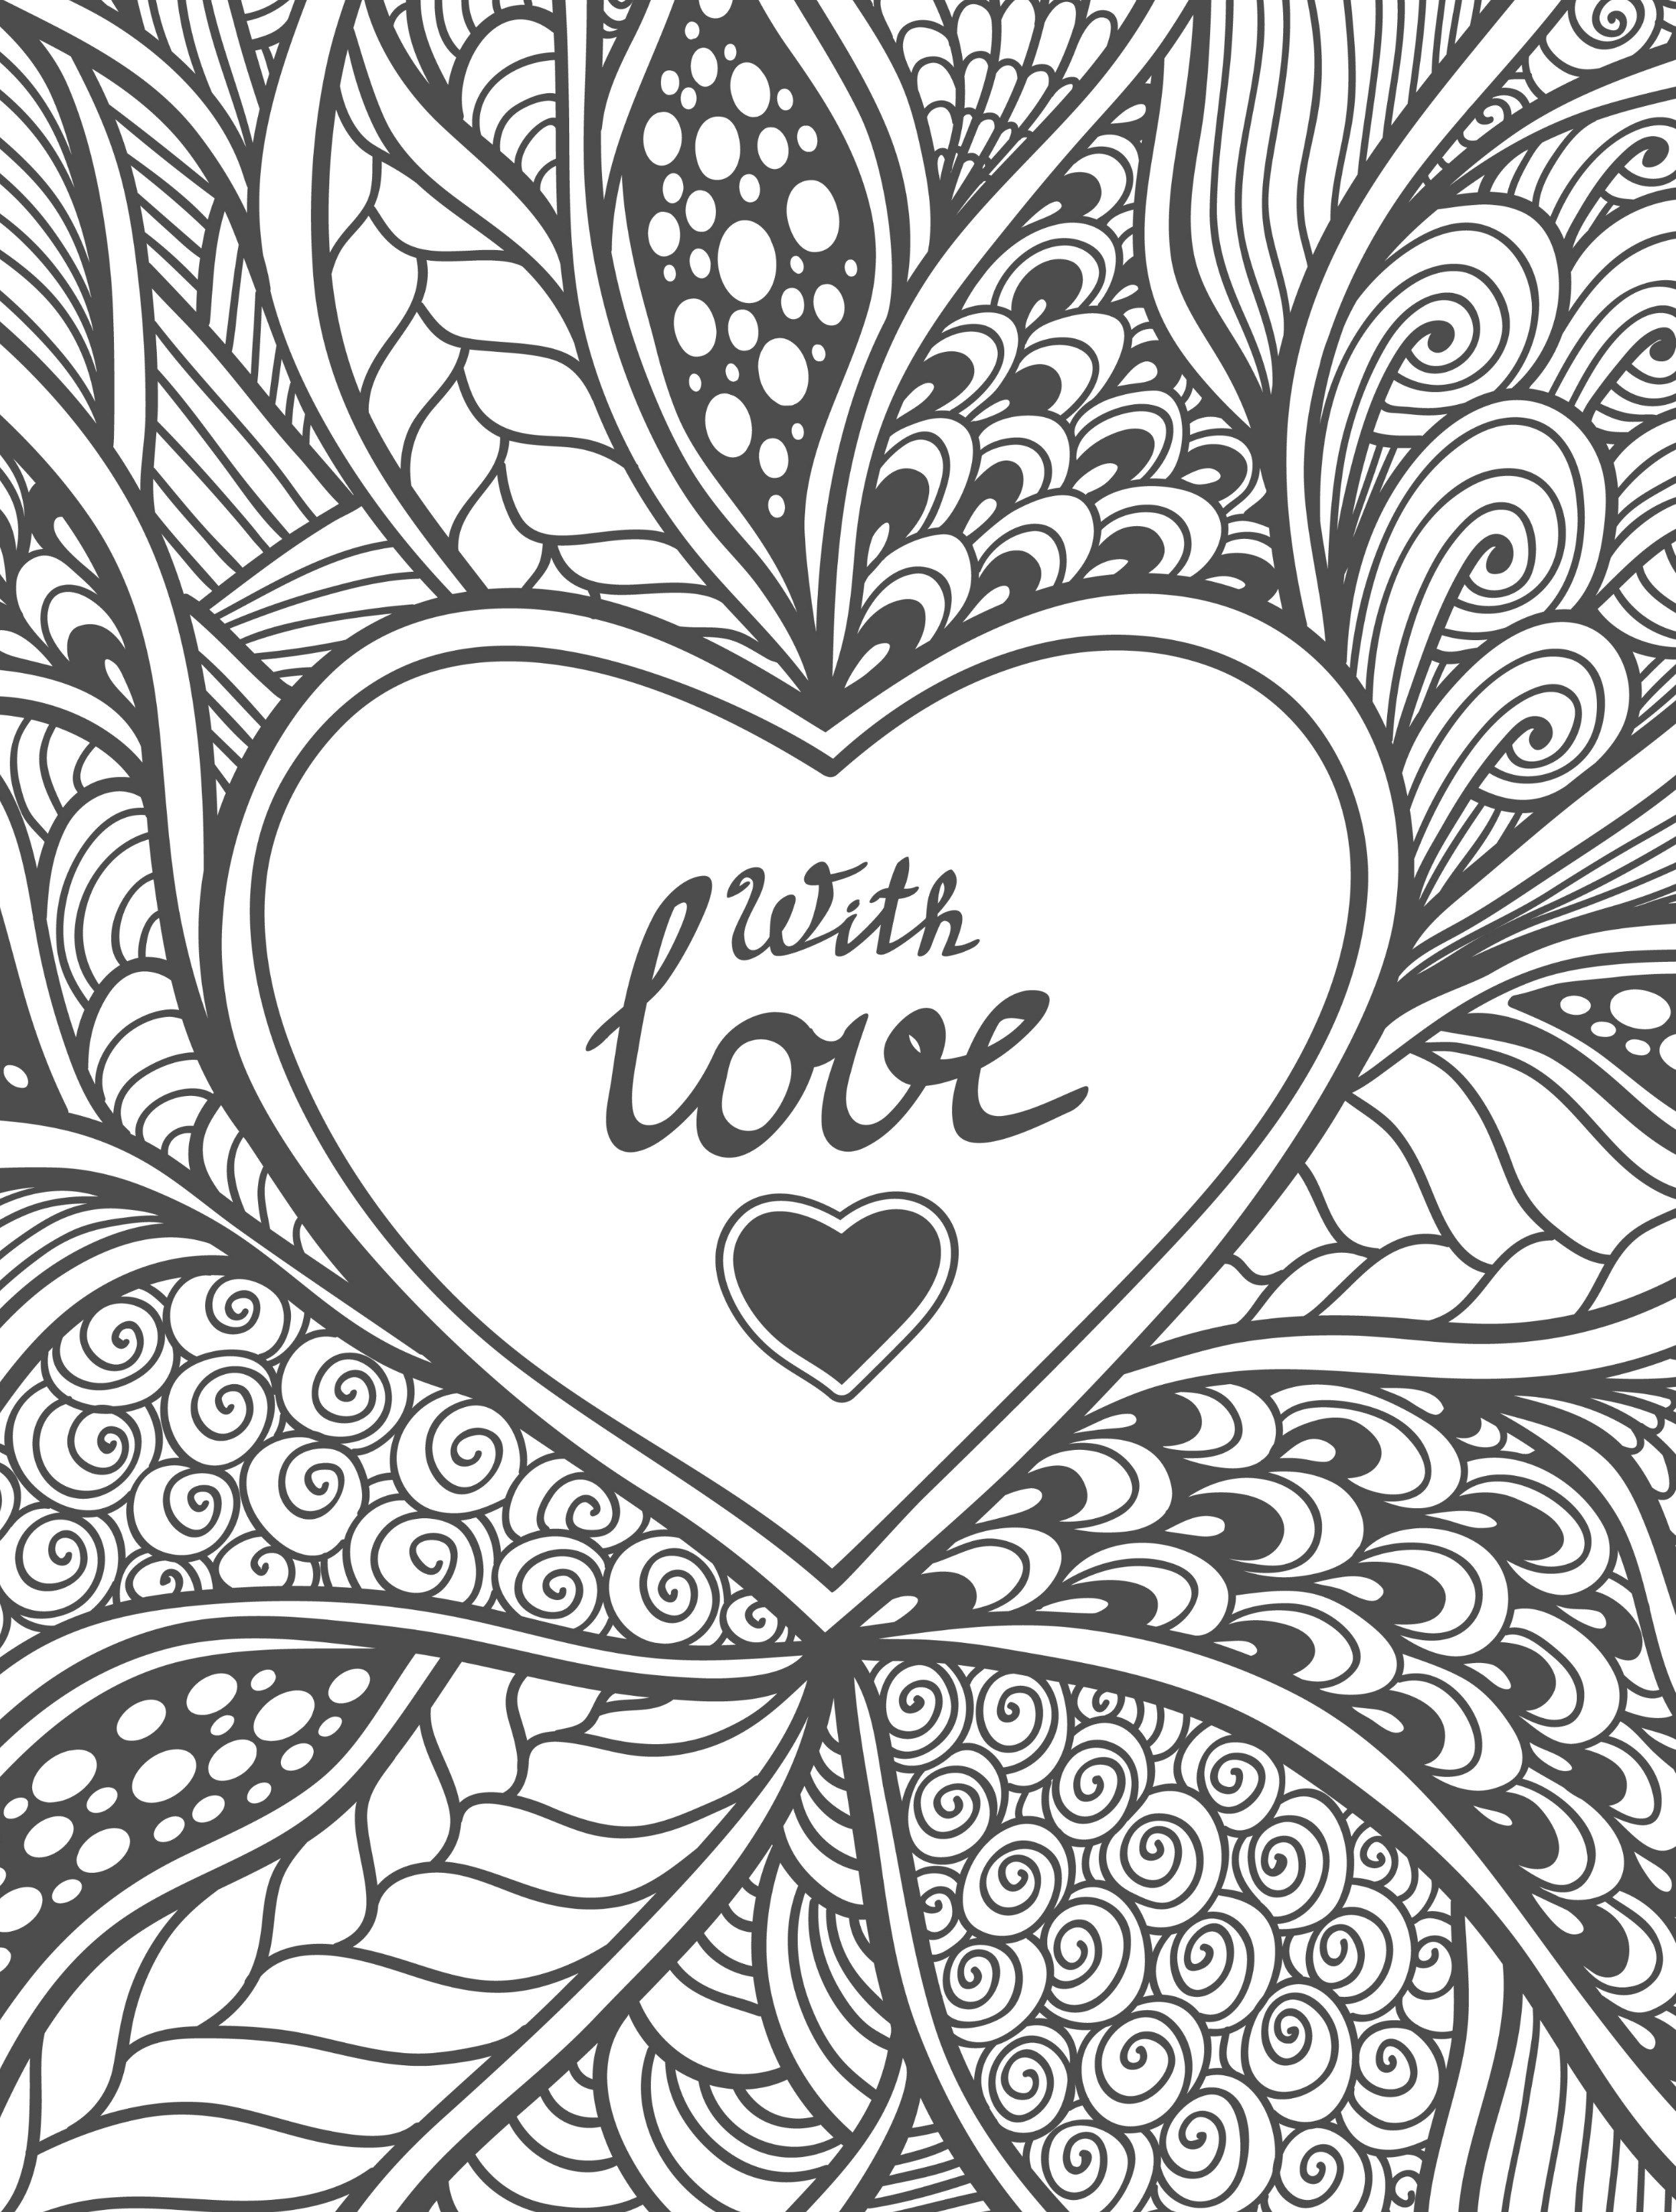 20 Free Printable Valentines Adult Coloring Pages Abstract Coloring Pages Heart Coloring Pages Valentine Coloring Pages